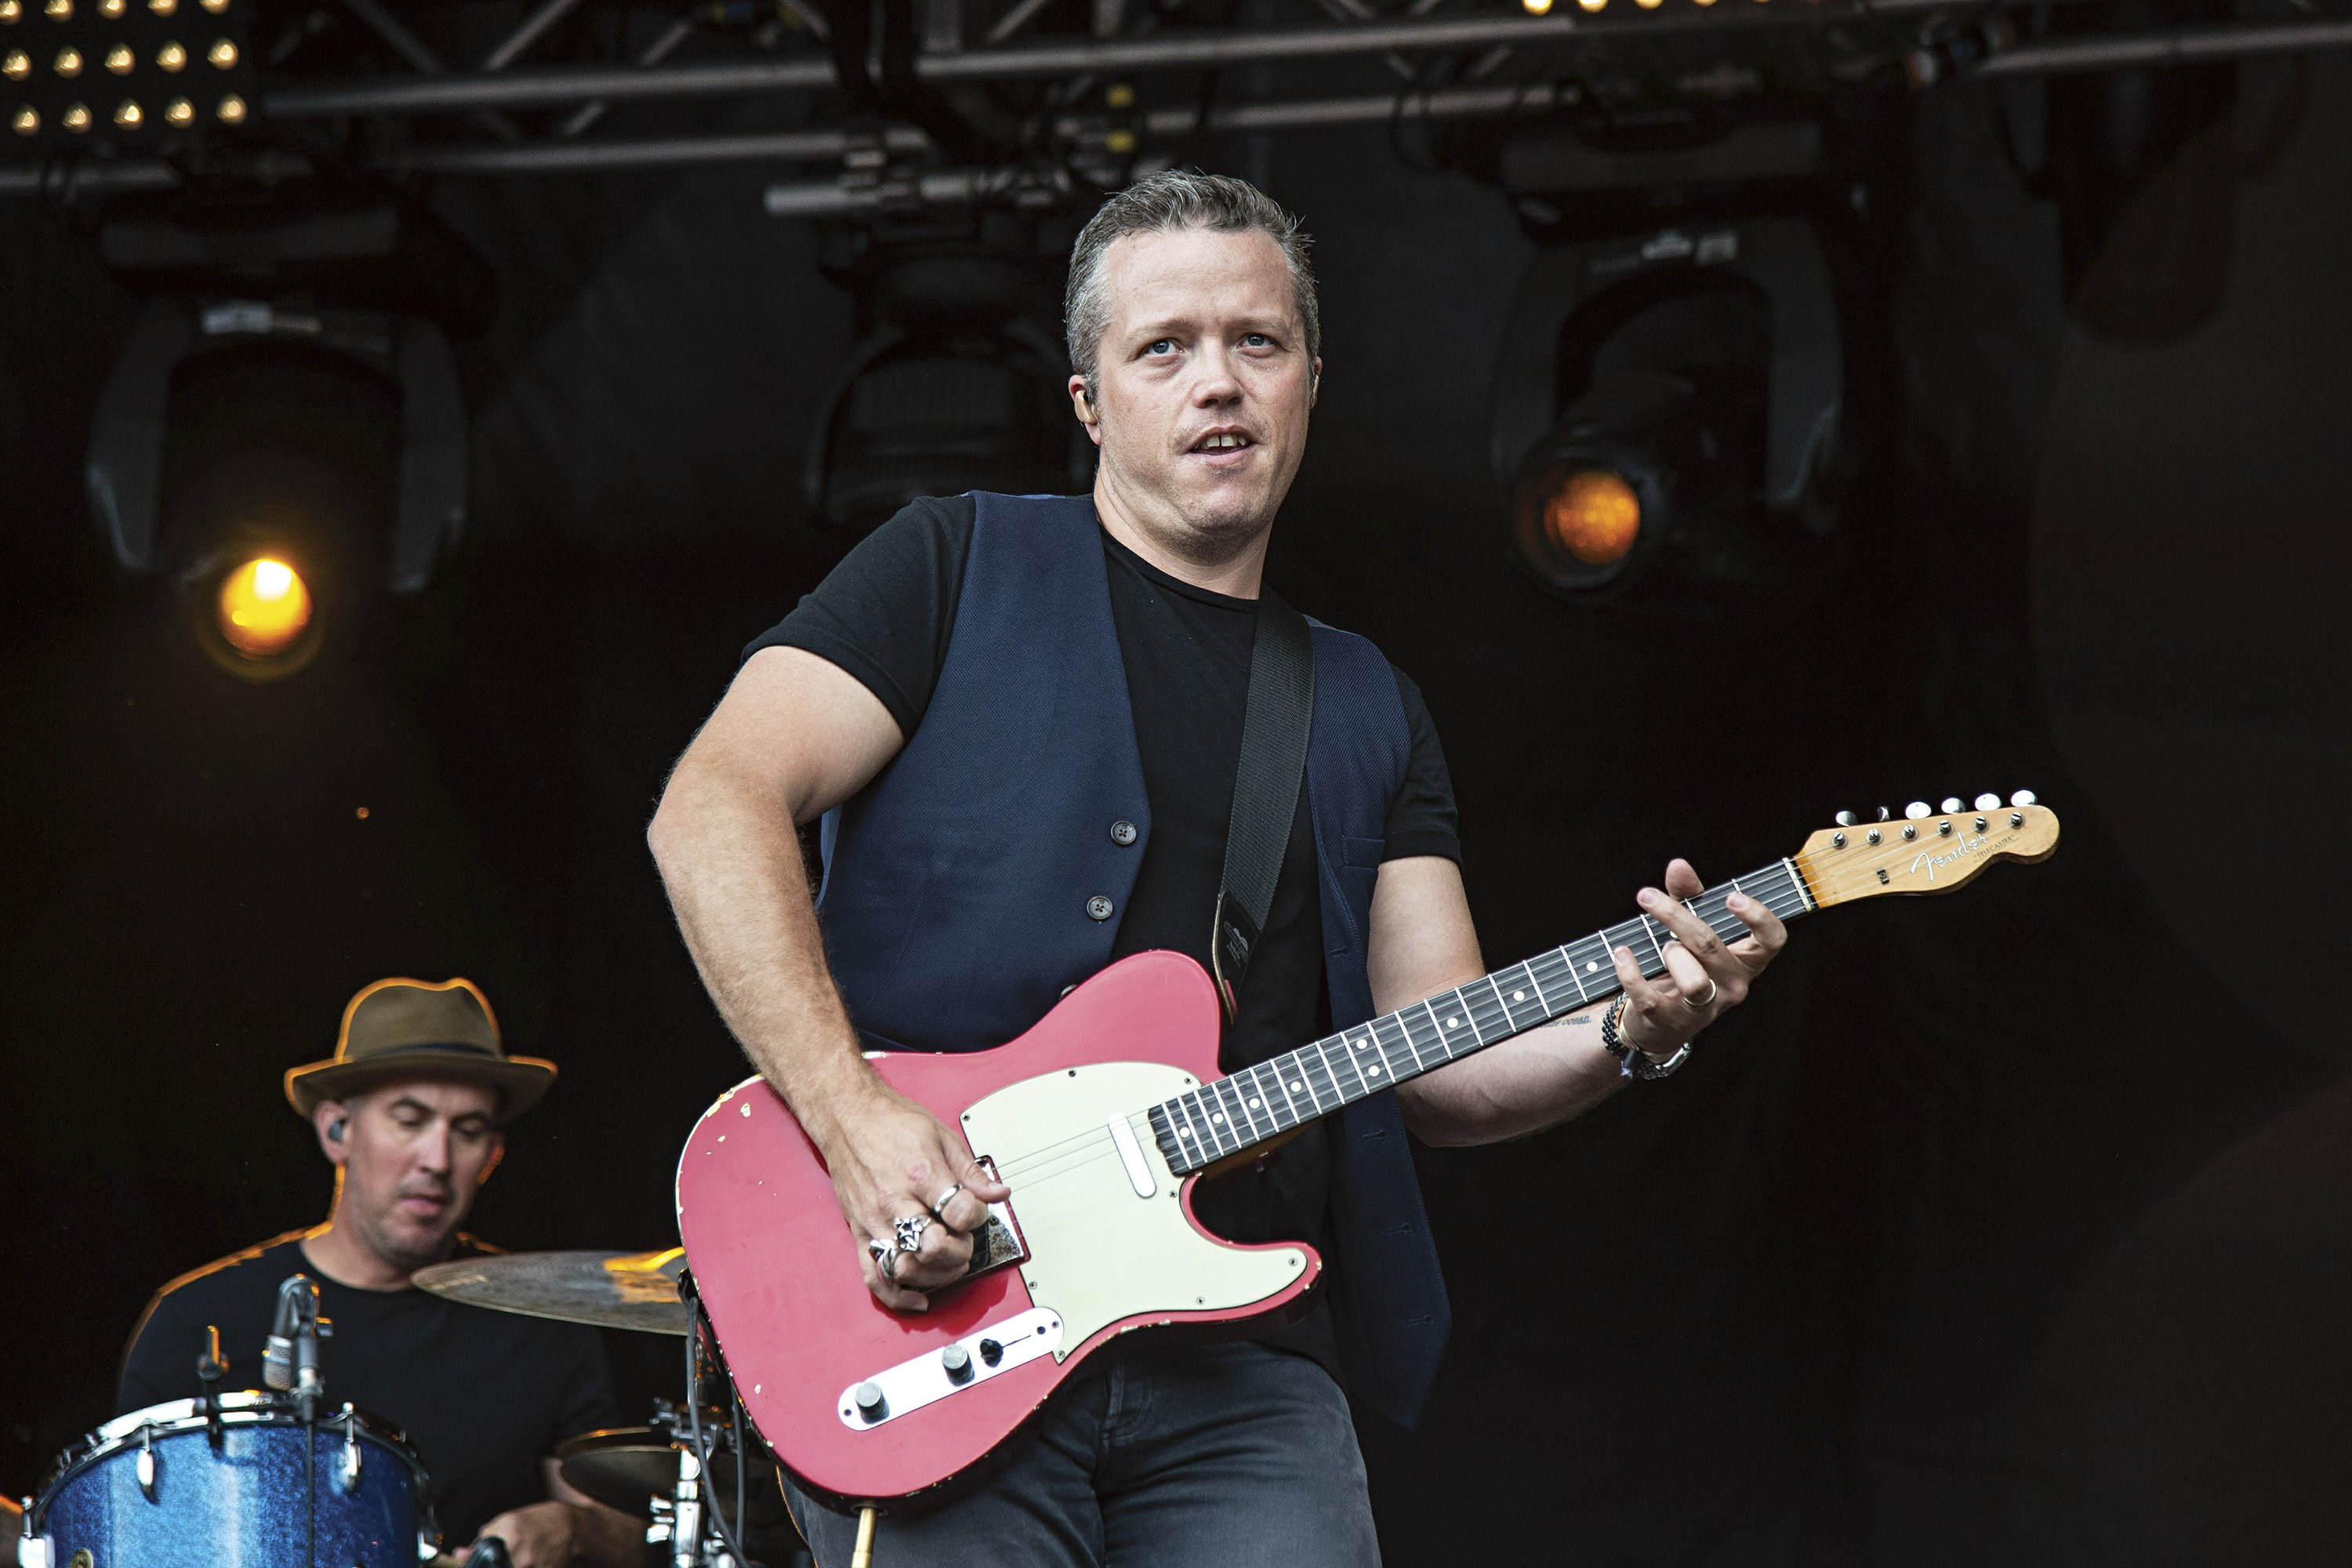 Summertime, and the living is uneasy for Jason Isbell